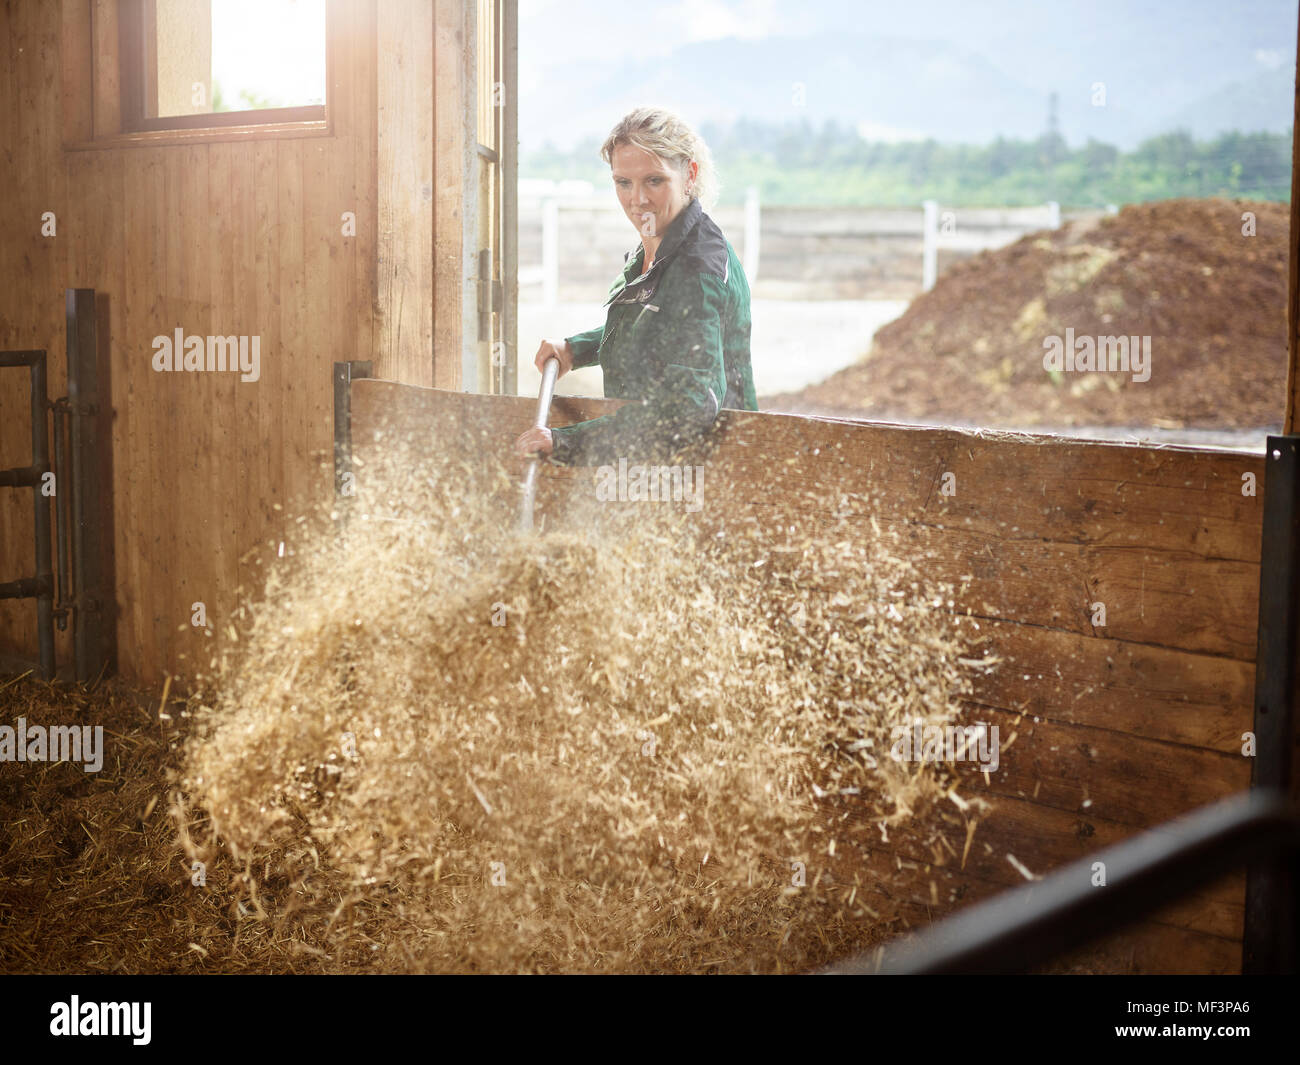 Female farmer working with straw on a farm - Stock Image